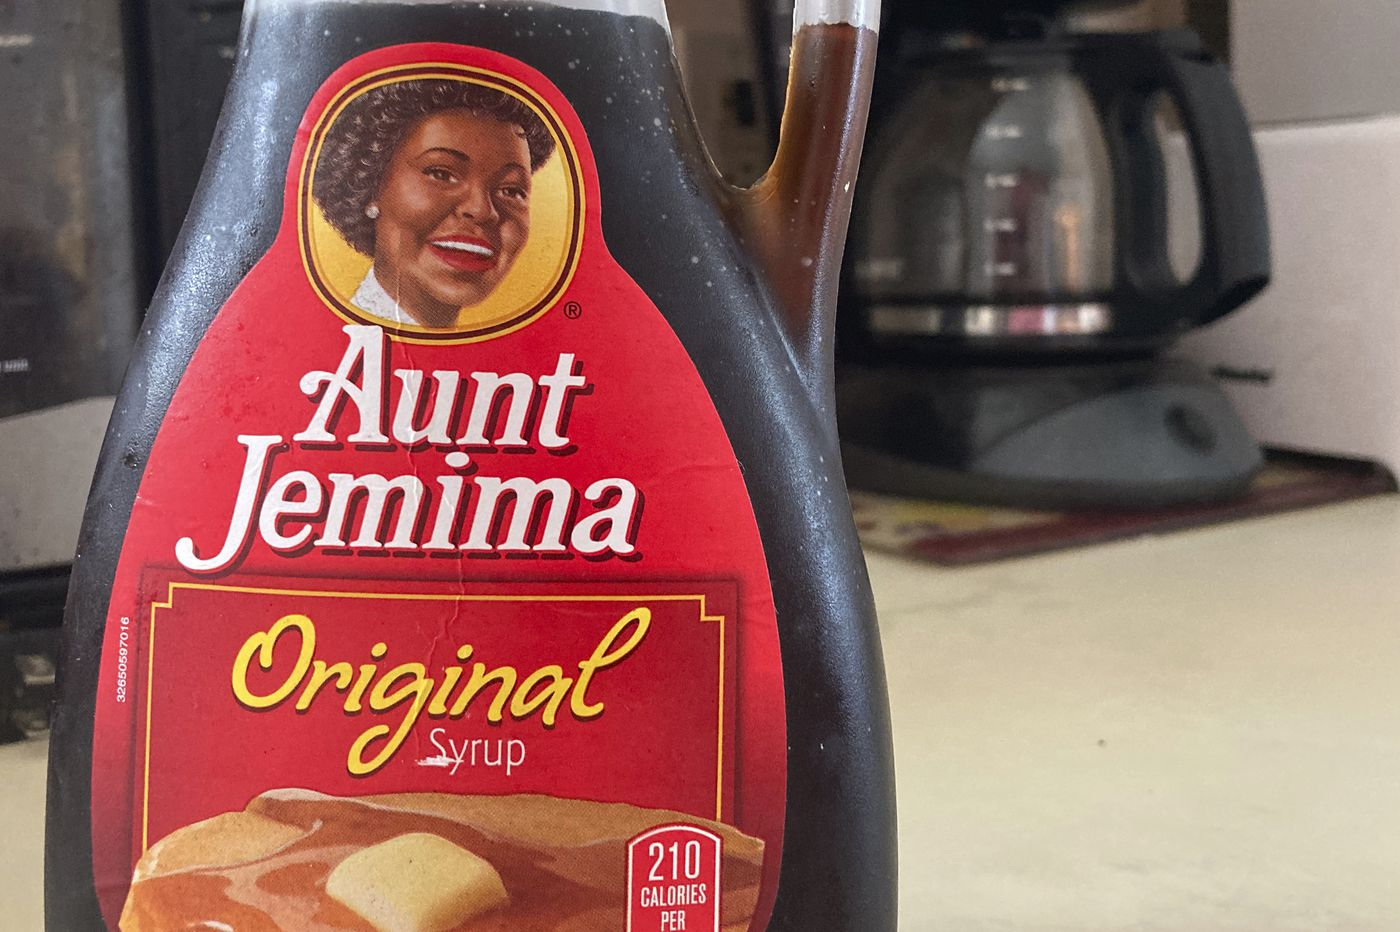 Quaker Oats retiring Aunt Jemima brand because of racial stereotype; Uncle Ben's to 'evolve'